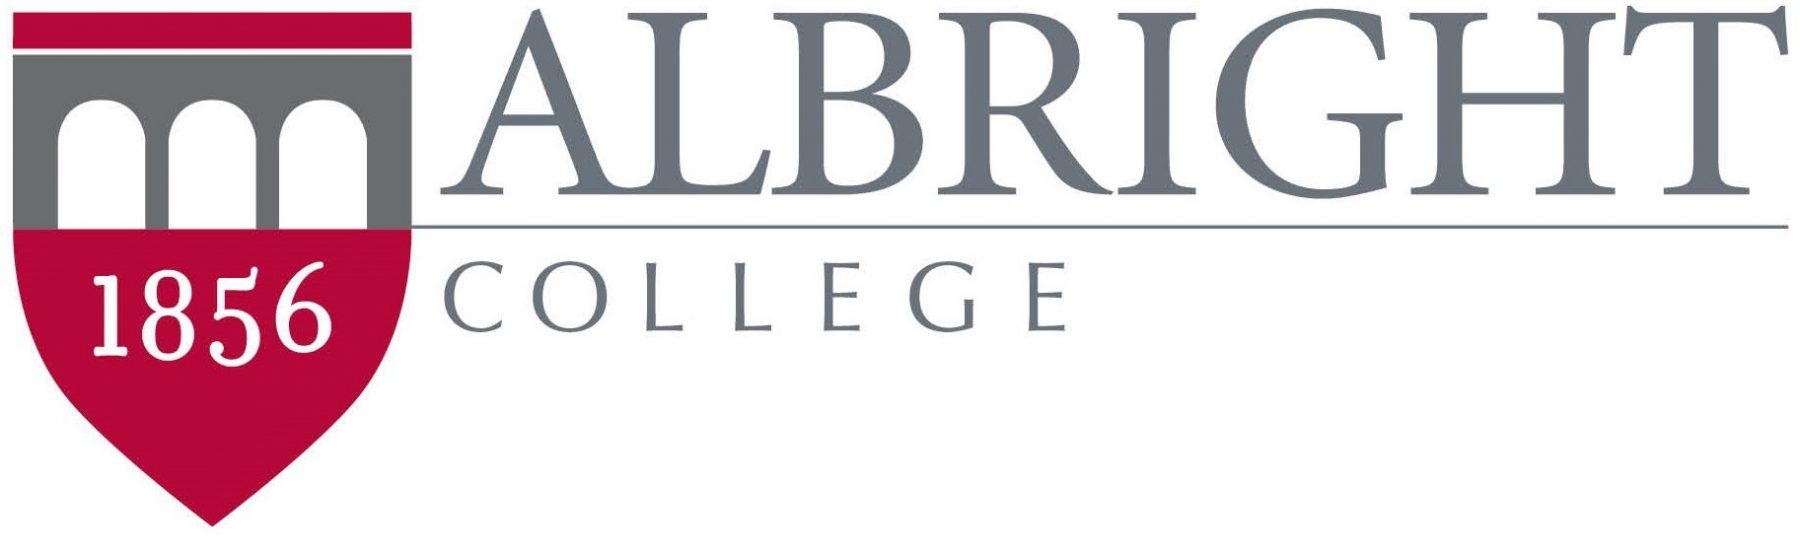 albright-college-logo-red-gray-white